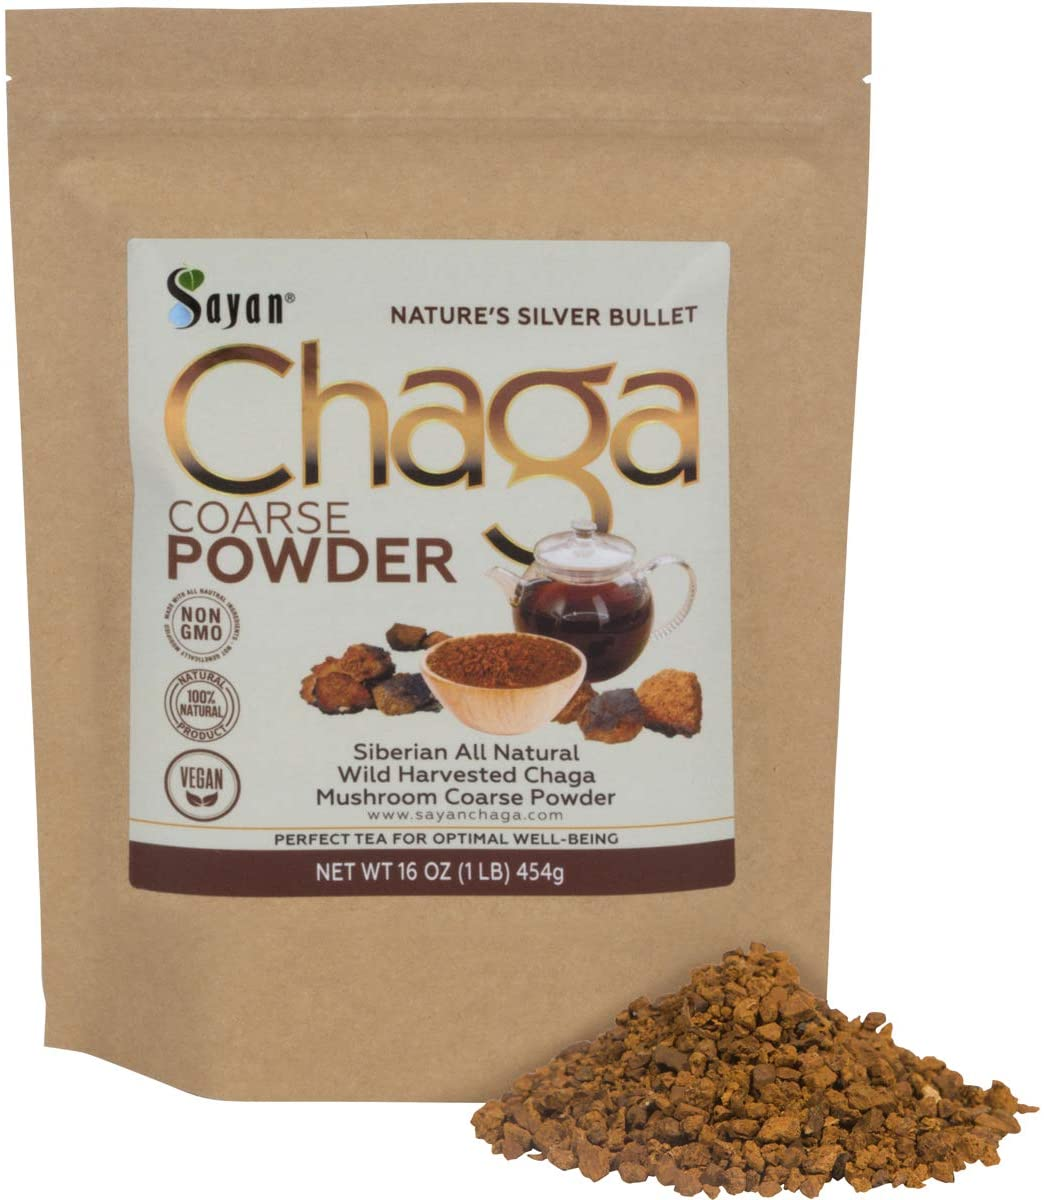 Sayan Siberian Raw Ground Chaga Powder 1 Lbs 454g – Wild Forest Mushroom Tea, Powerful Adaptogen Antioxidant Supplement – Support for Immune System, Digestive Health and Inflammation Reduction